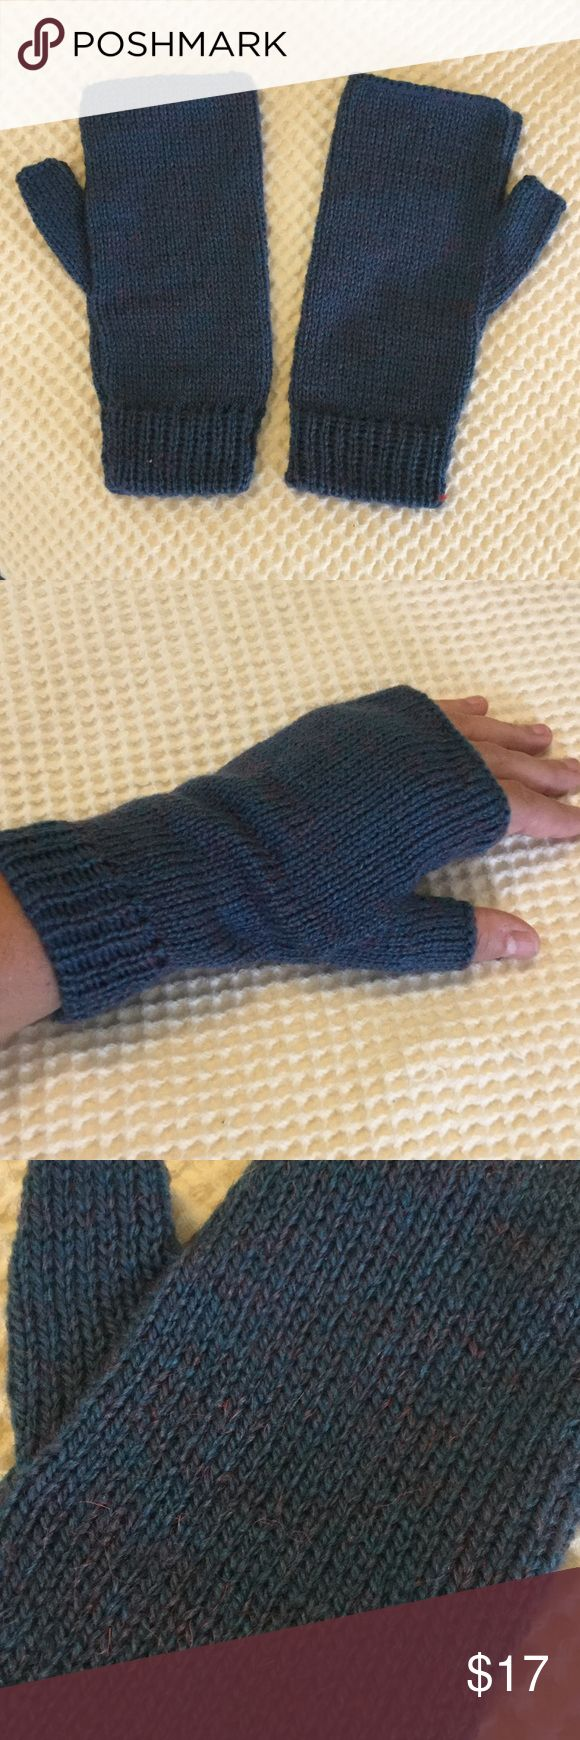 New! Alpaca fingerless gloves Direct from Latin America, these gloves don't have tags. I am calling them medium because that's what I usually use in gloves. A dusty blue with purple speckling. Tried to capture that in the last photo. Gloves cover the wrist (which is where the wind usually gets me!). Never worn. Accessories Gloves & Mittens